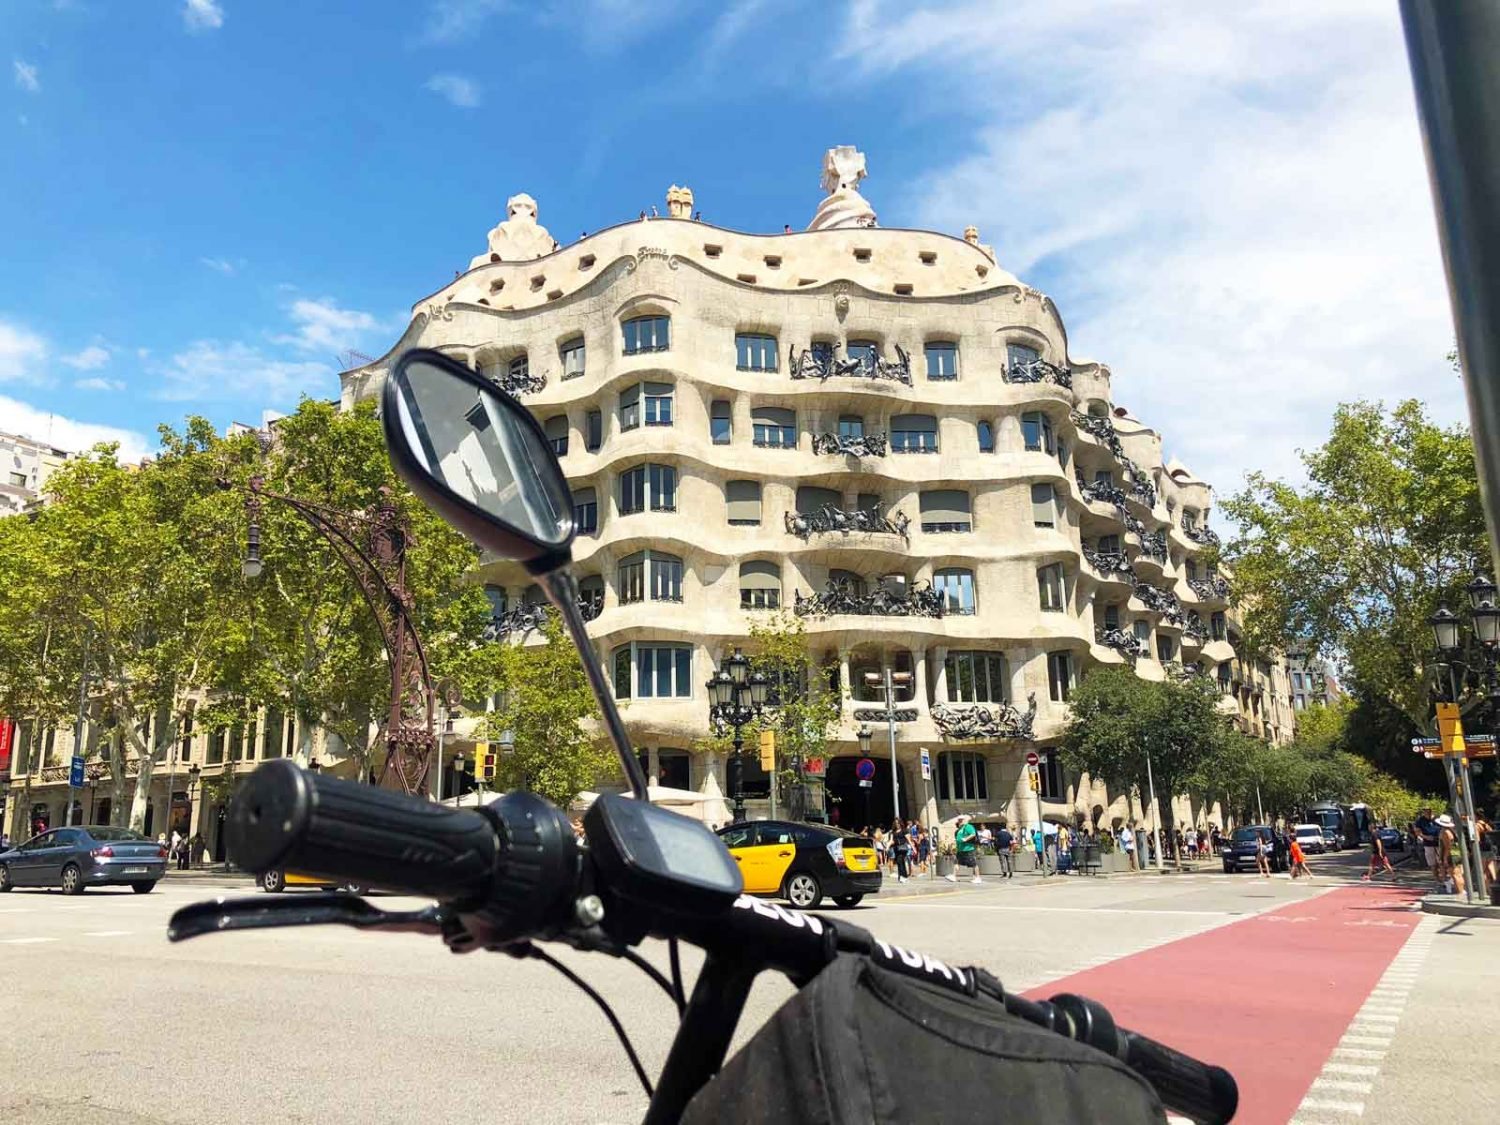 barcelona_electric_scooter_la_pedrera